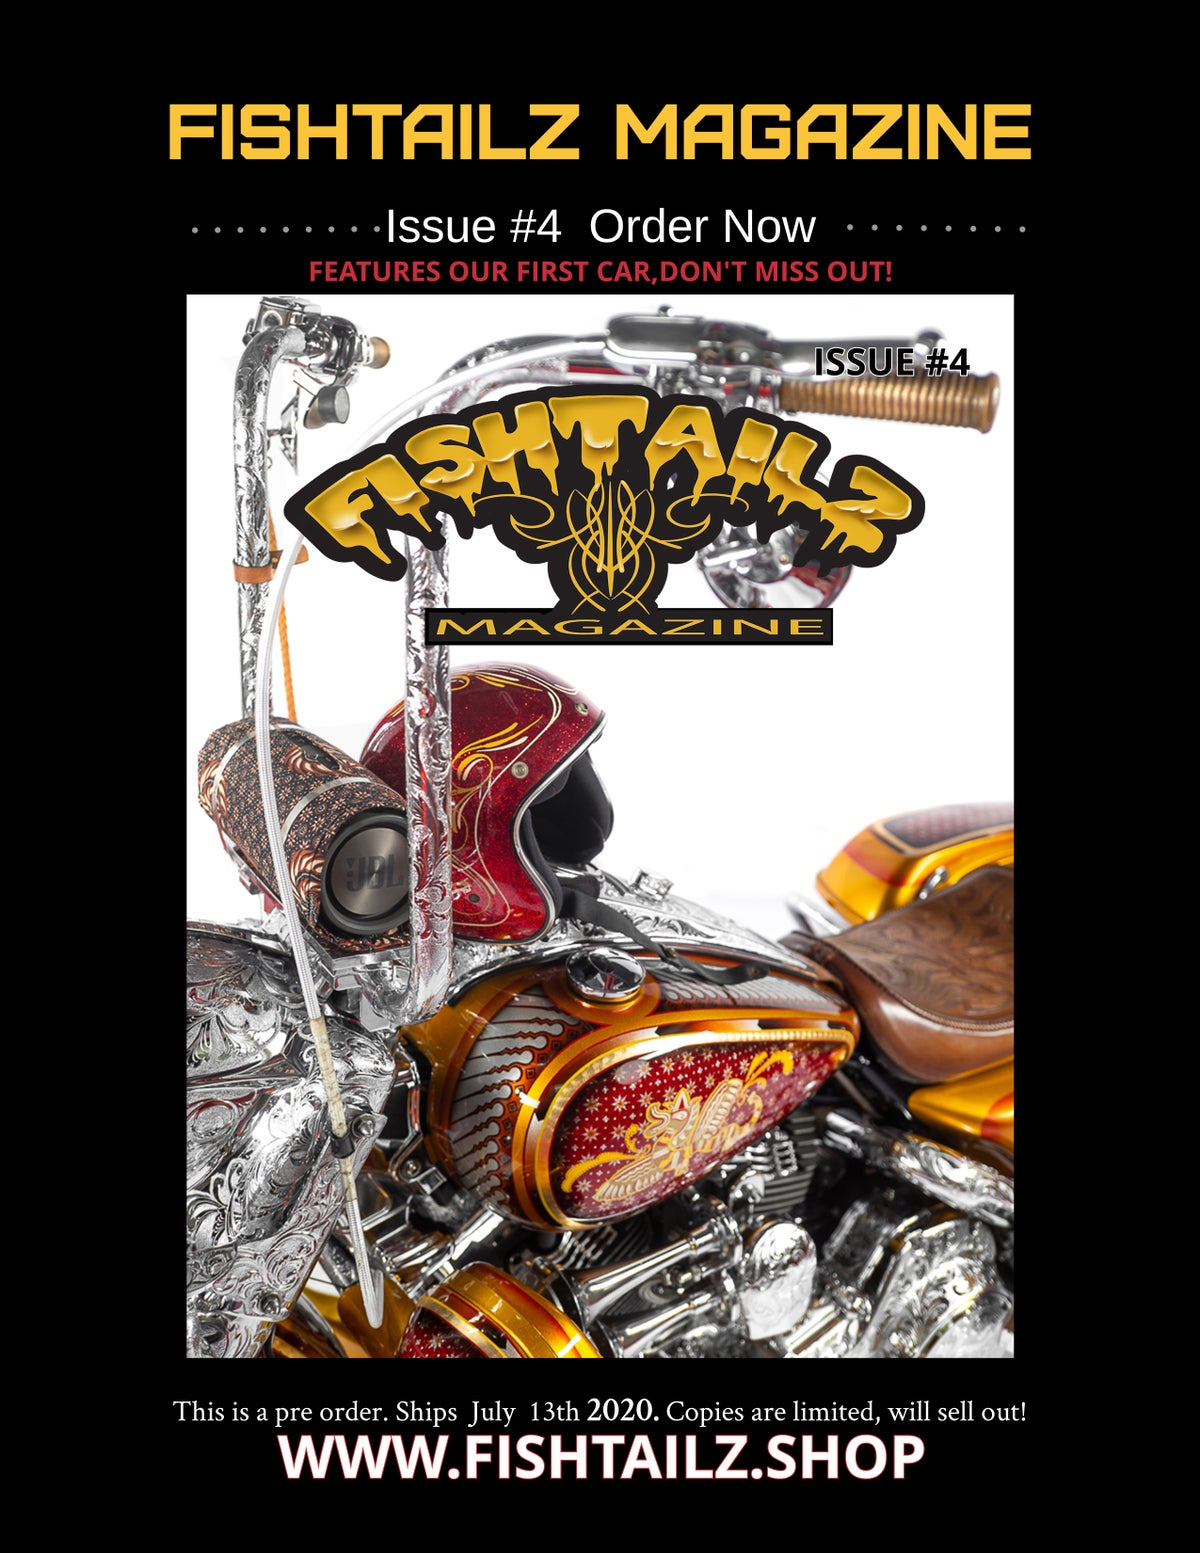 Image of Issue #4 Fishtailz Magazine